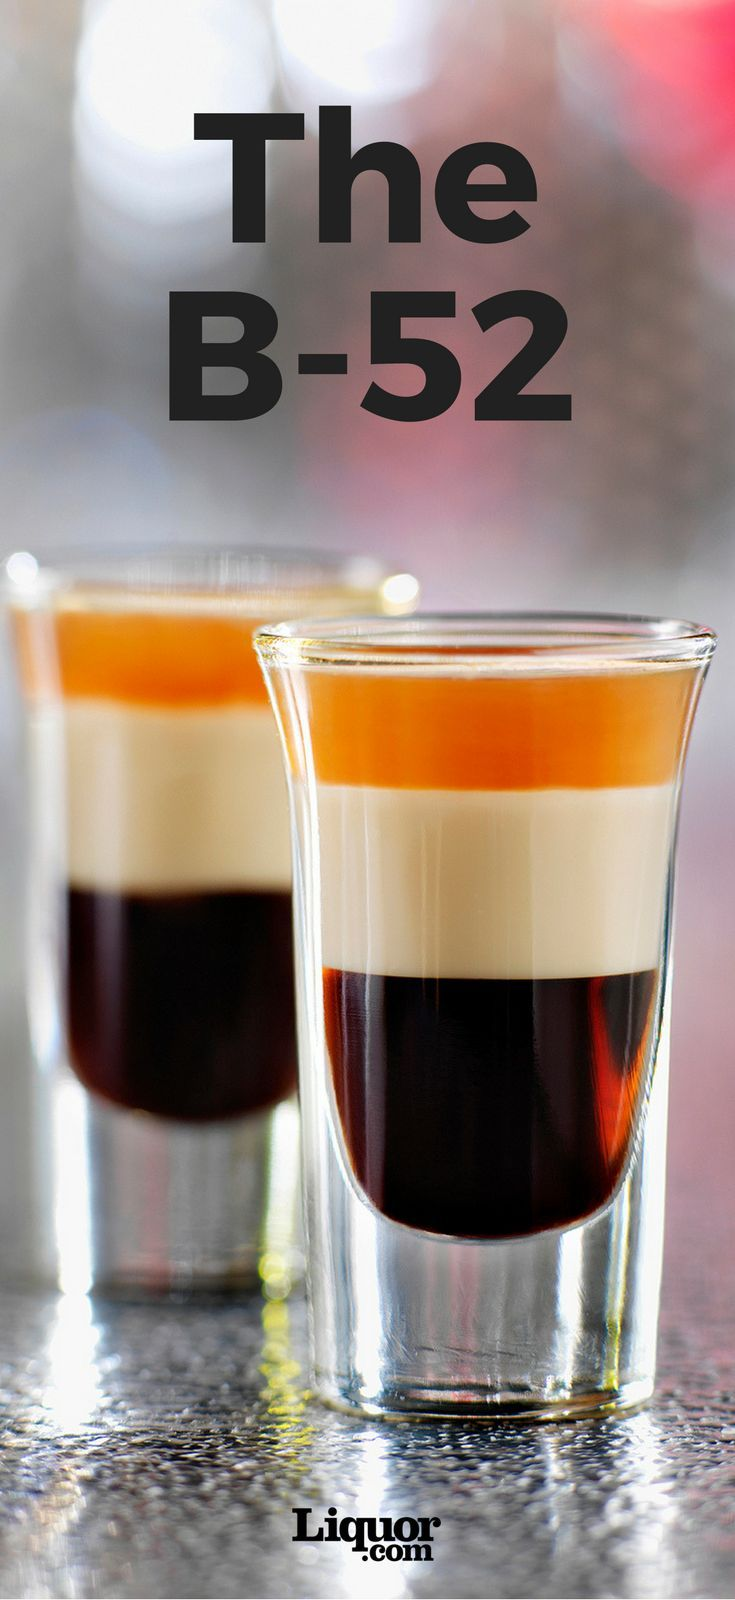 Believed to have originated in the 1970 by a bartender and fan of the iconic band, the B-52 is classic guilty pleasure armed with three liqueurs. Make this layered shooter in seconds and impress all your friends.